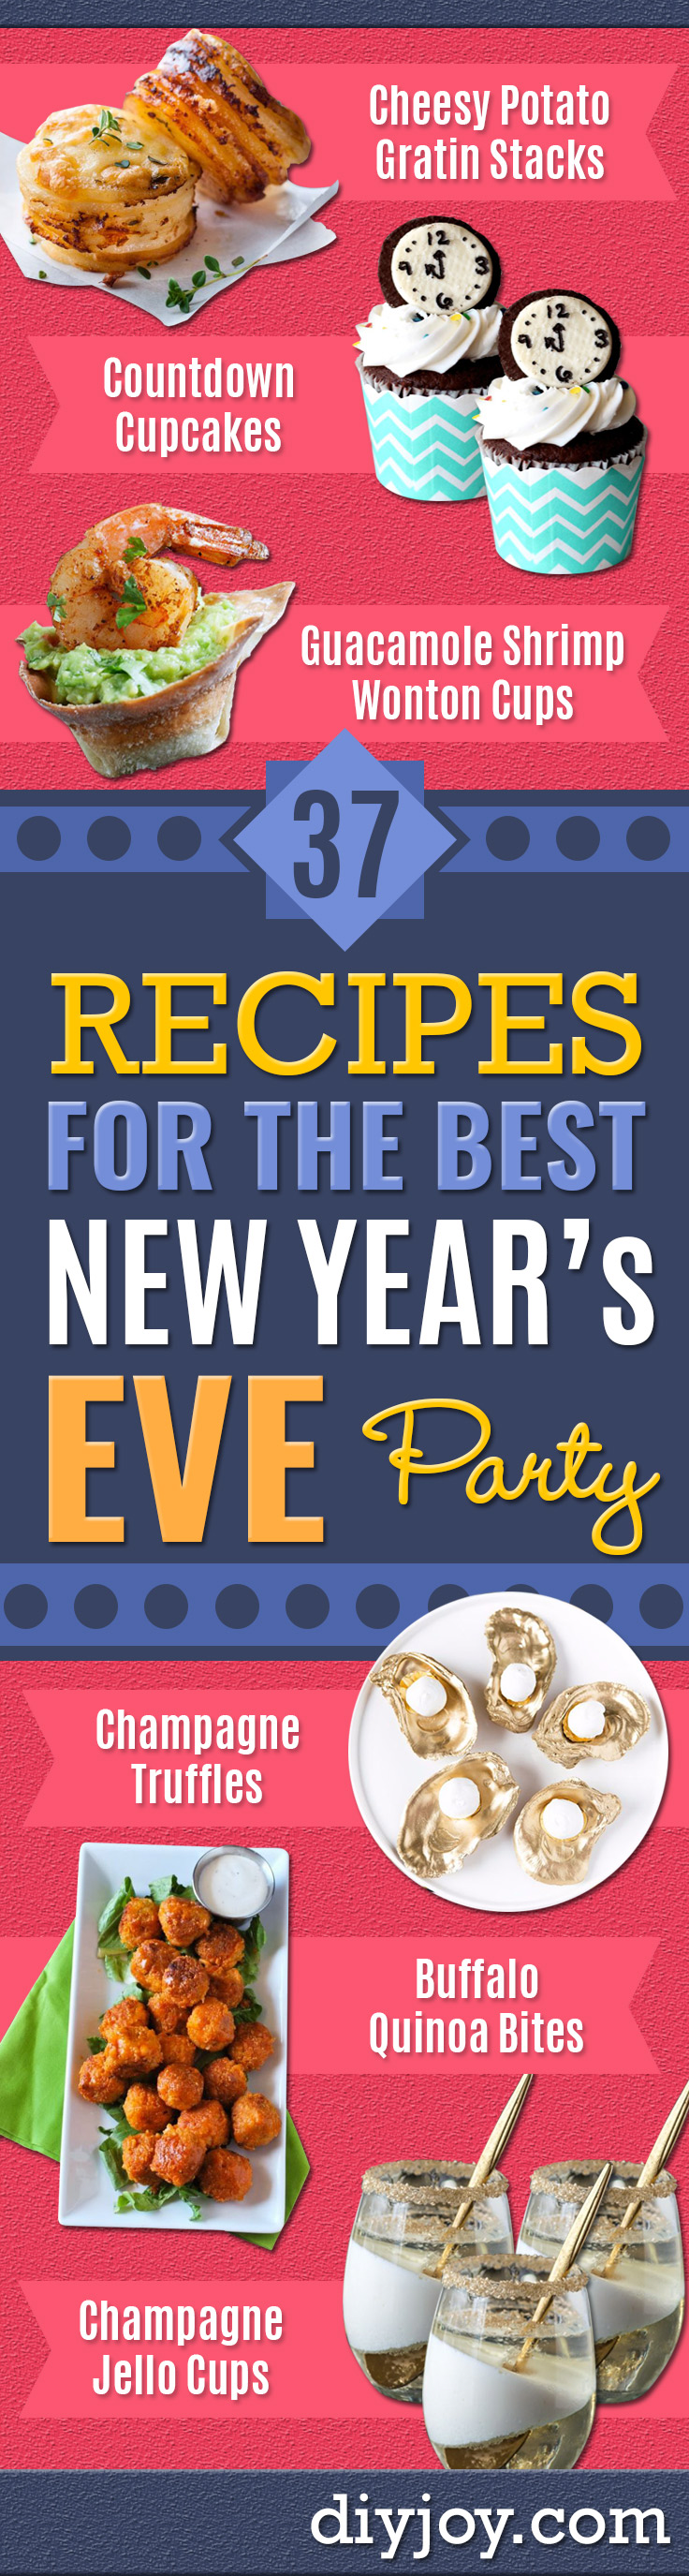 New Years Eve Party Recipes - Best New Year Drinks, Cocktails, Appetizers and Party Foods for Your New Year's Eve Celebration - Quick Desserts, Snacks, Dips, Finger Foods, Cake and Champagne Toast Recipe Ideas - Fun and Easy Foods To Serve For A Crowd http://diyjoy.com/new-years-eve-recipes